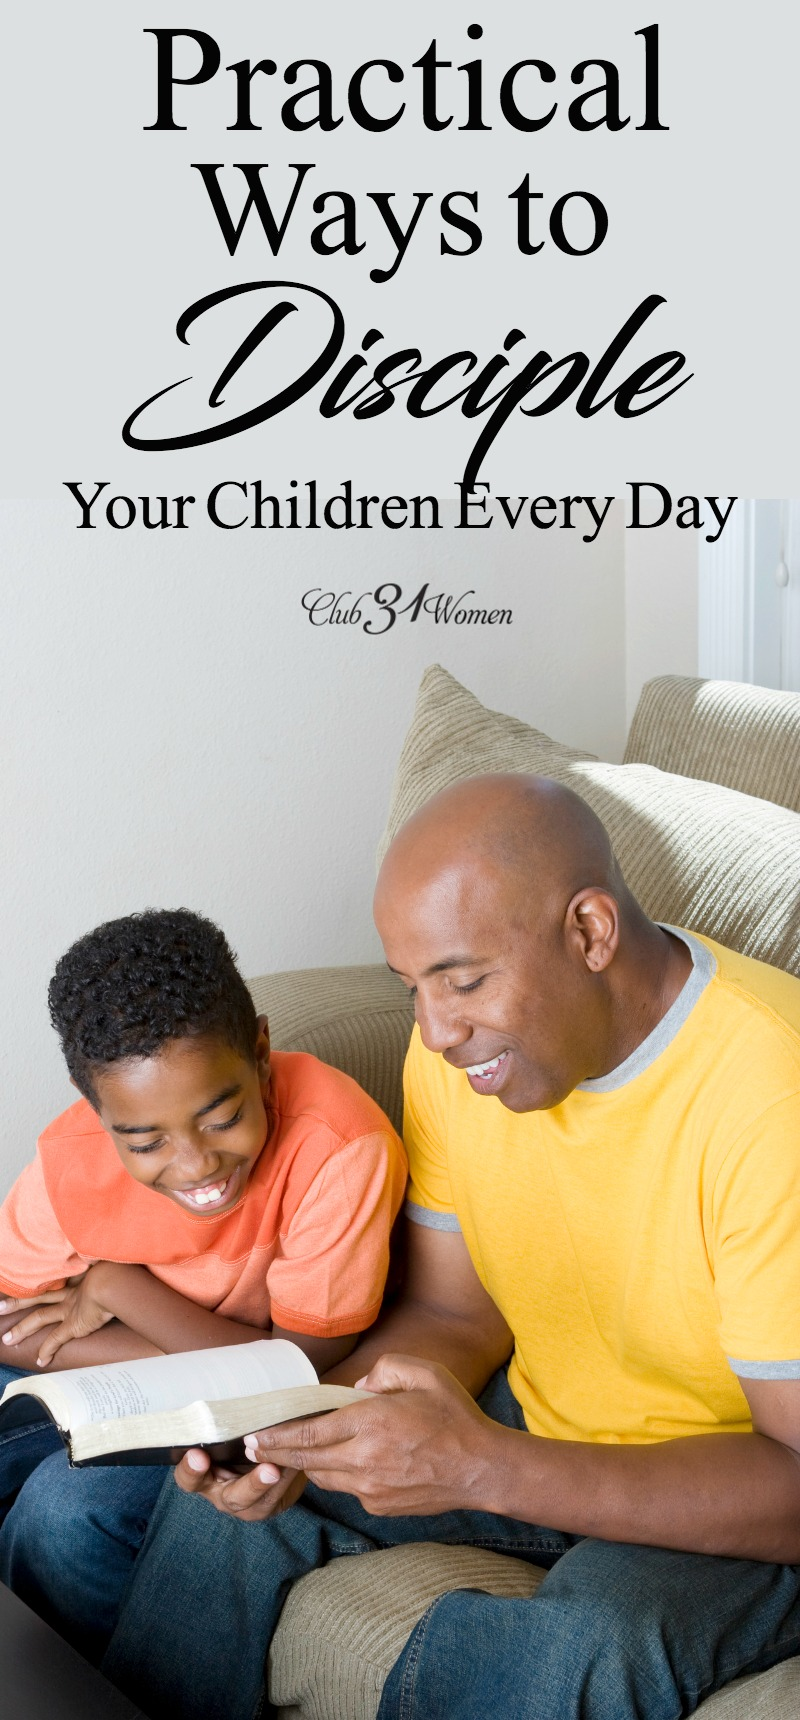 How can we disciple our children consistently and effectively? What would that look like? Here are some practical ways to disciple every day. via @Club31Women